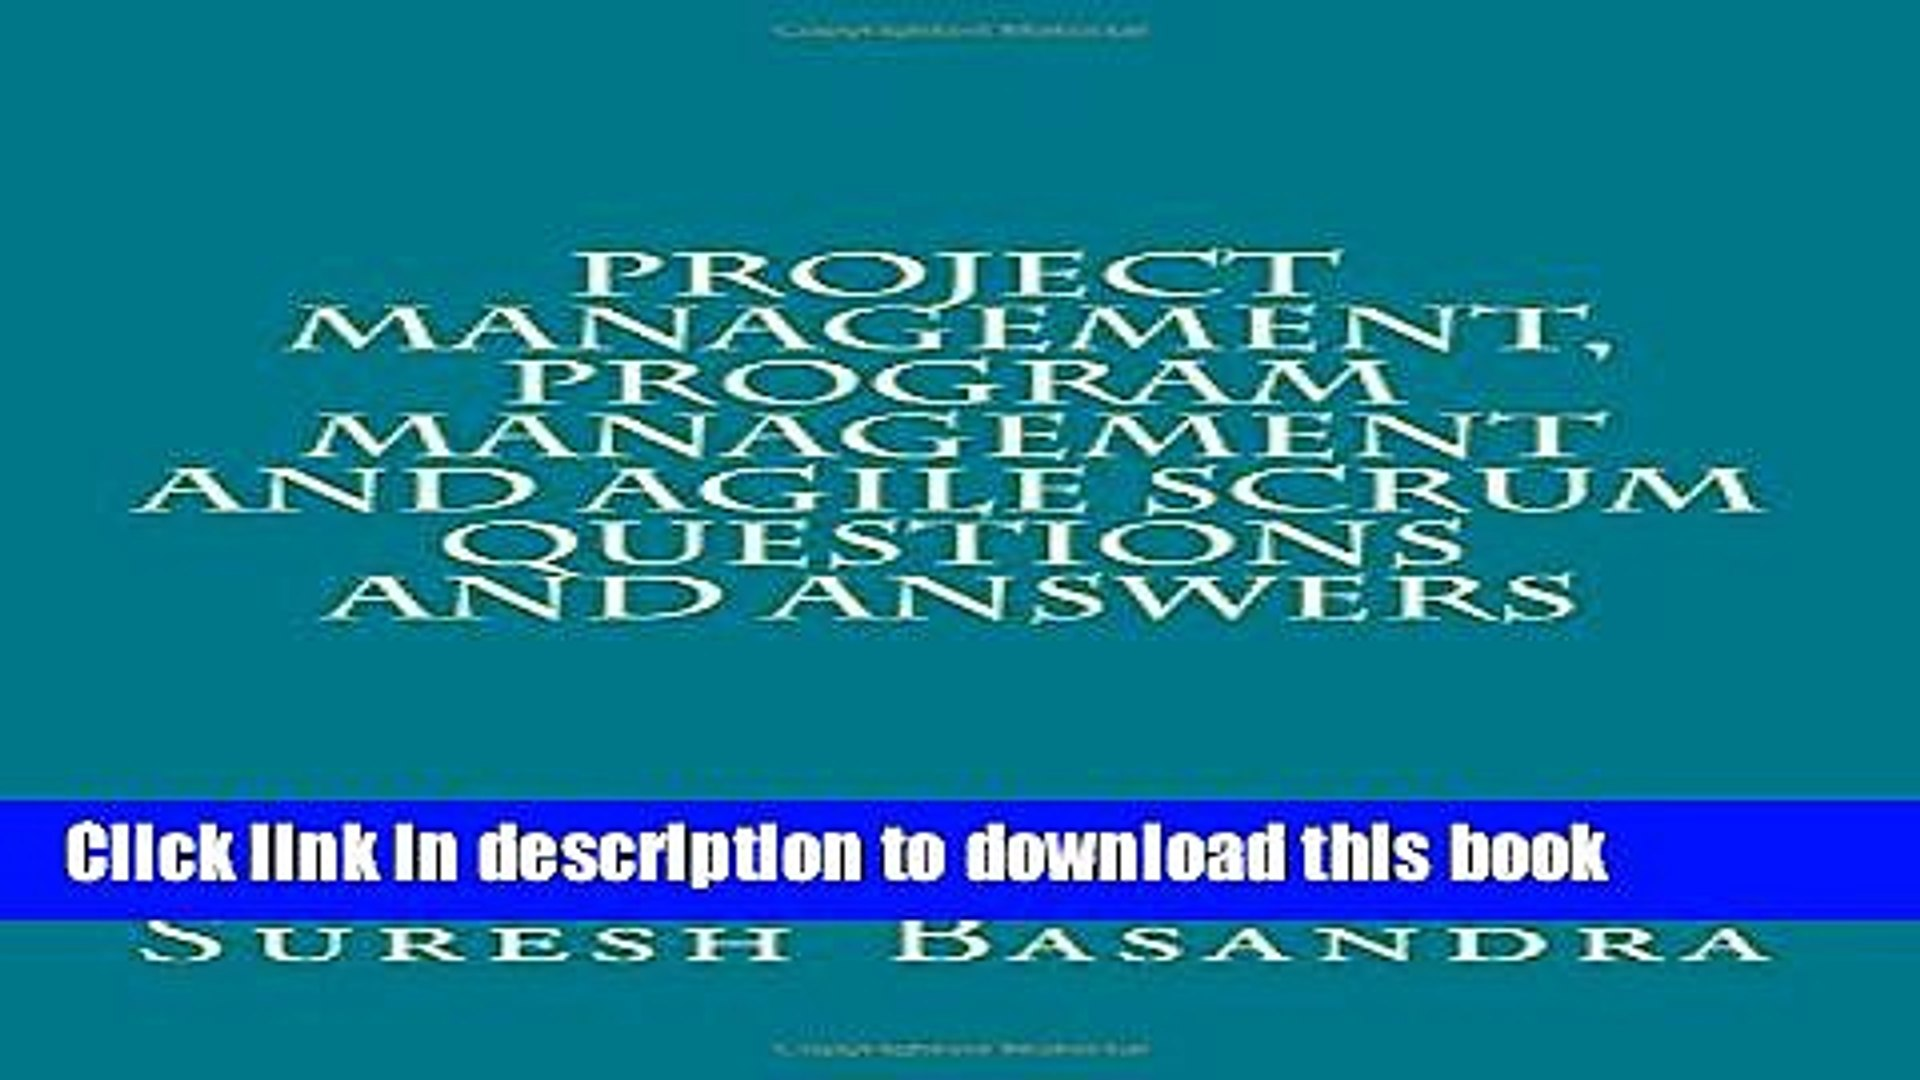 Ebook Project Management, Program Management and Agile Scrum Questions and Answers Free Download